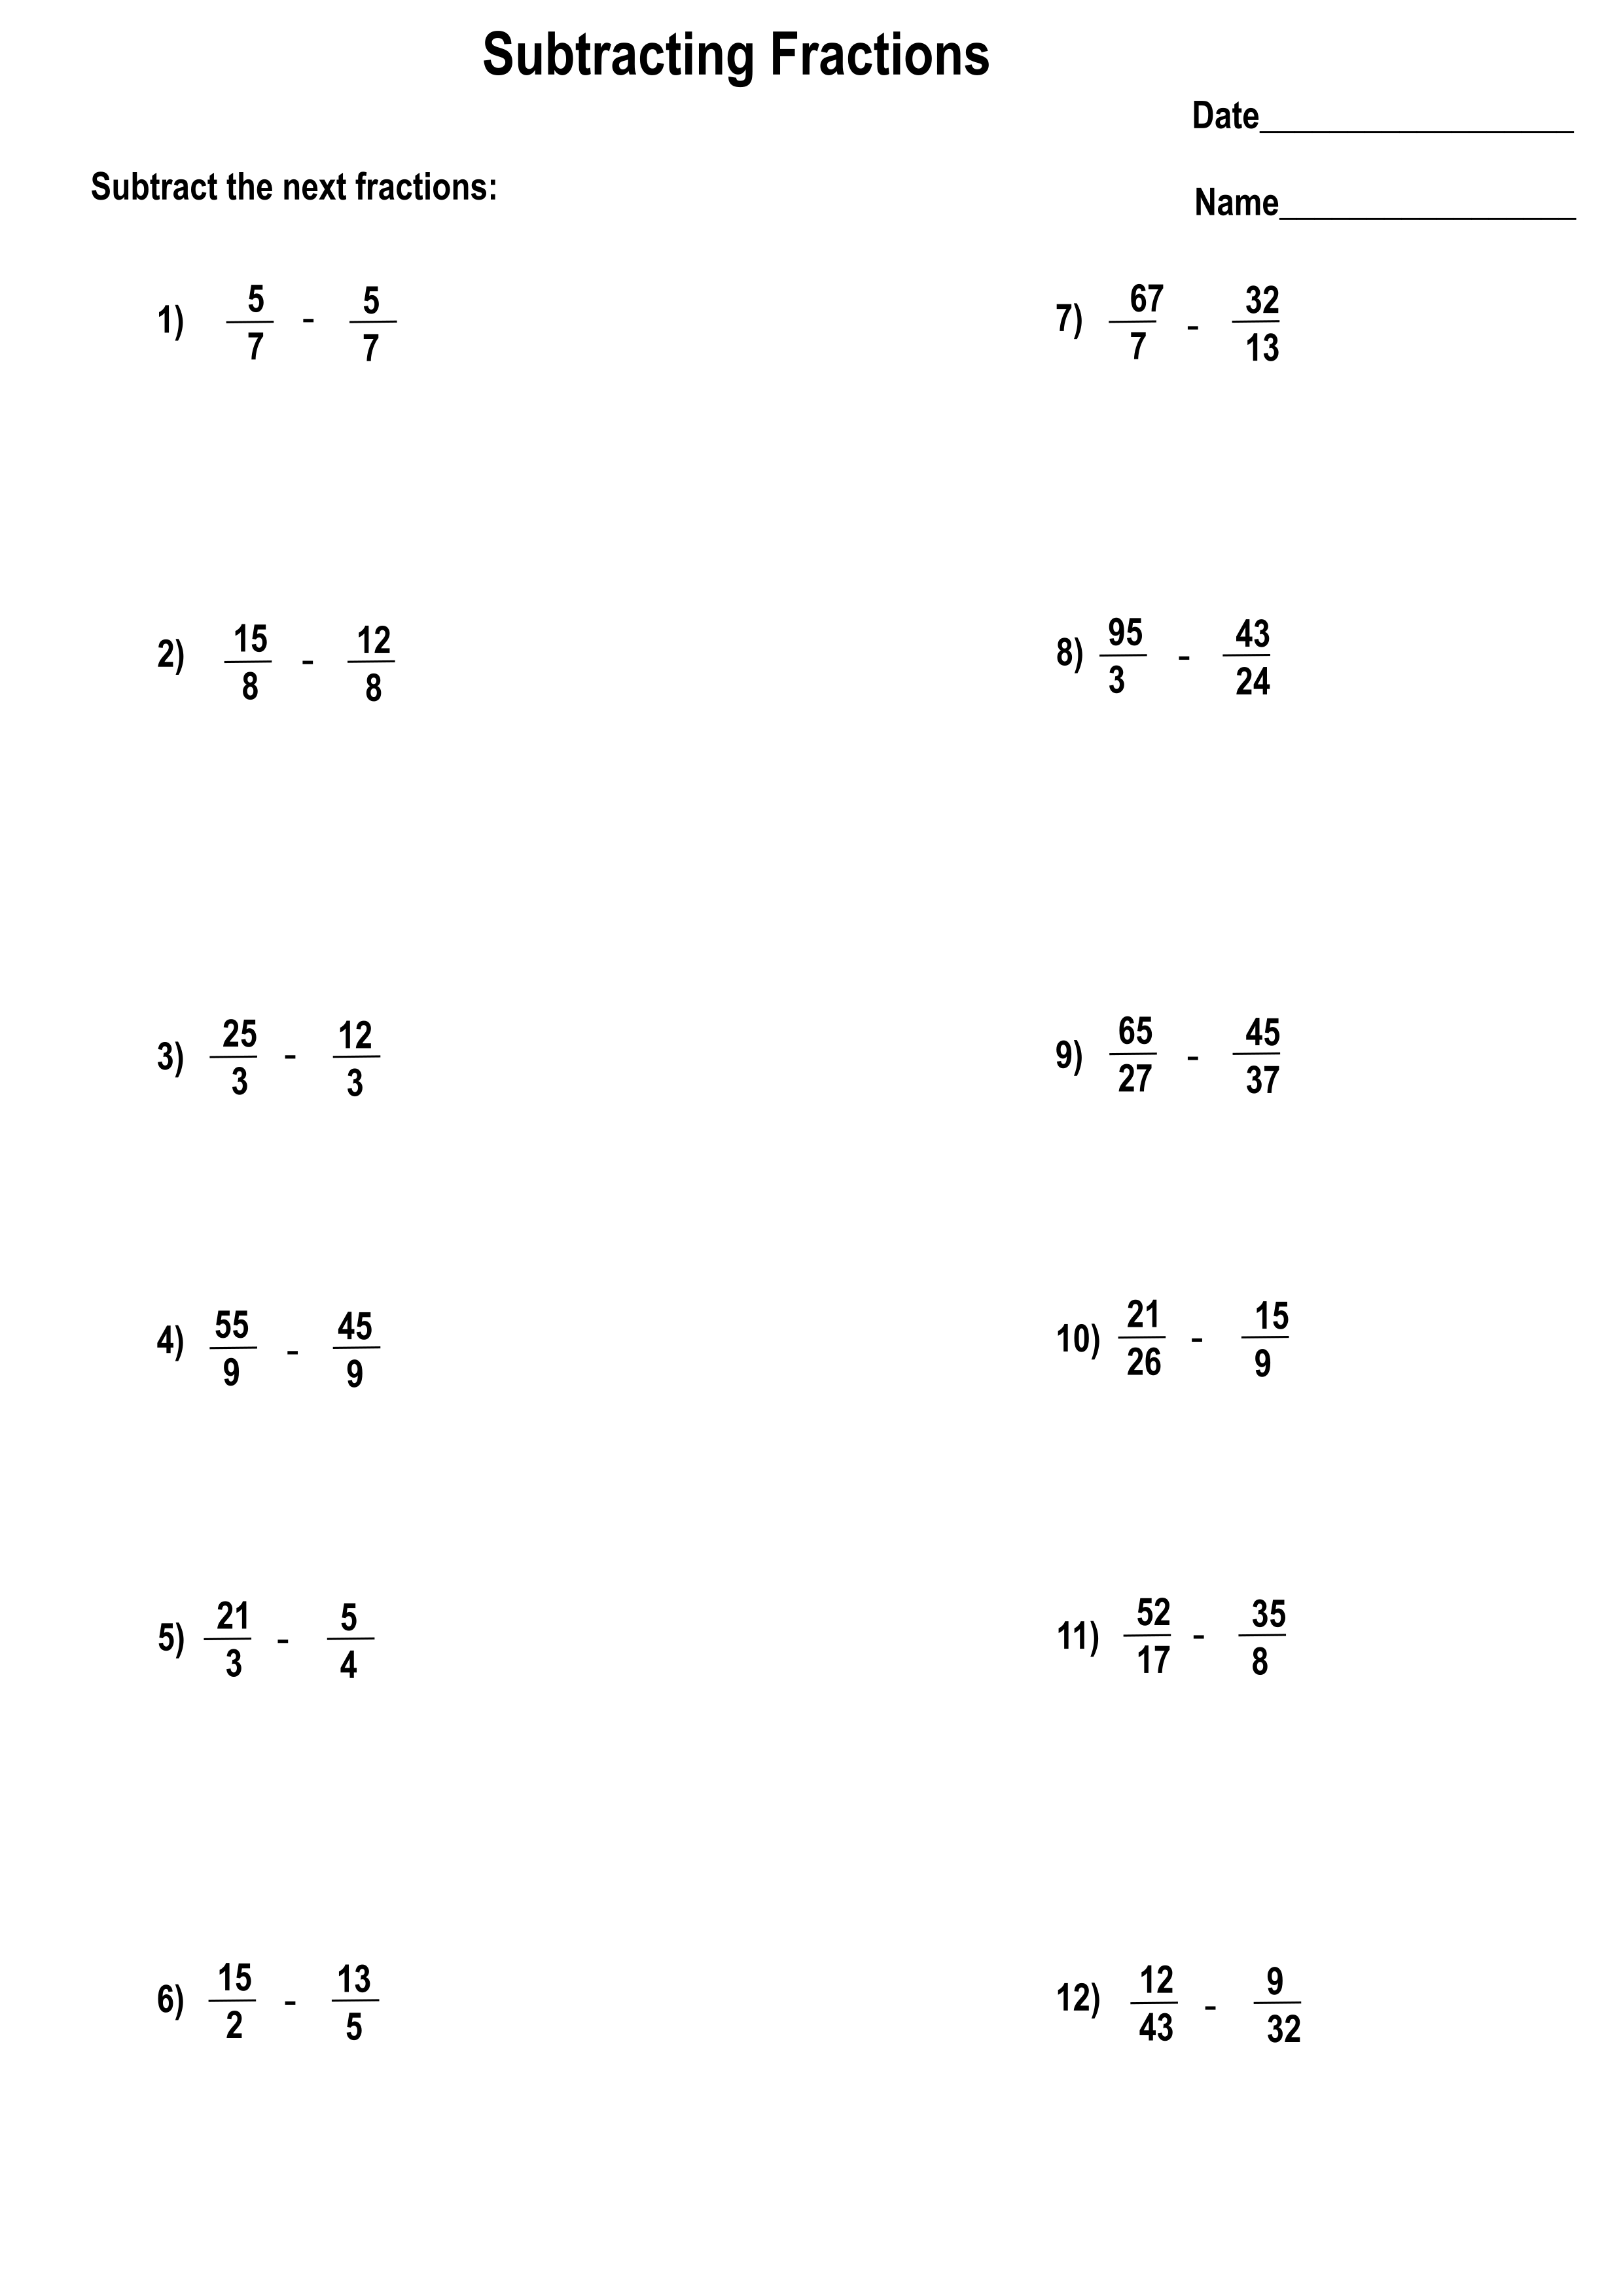 hight resolution of Printable addition fractions worksheets with answers - Printerfriend.ly